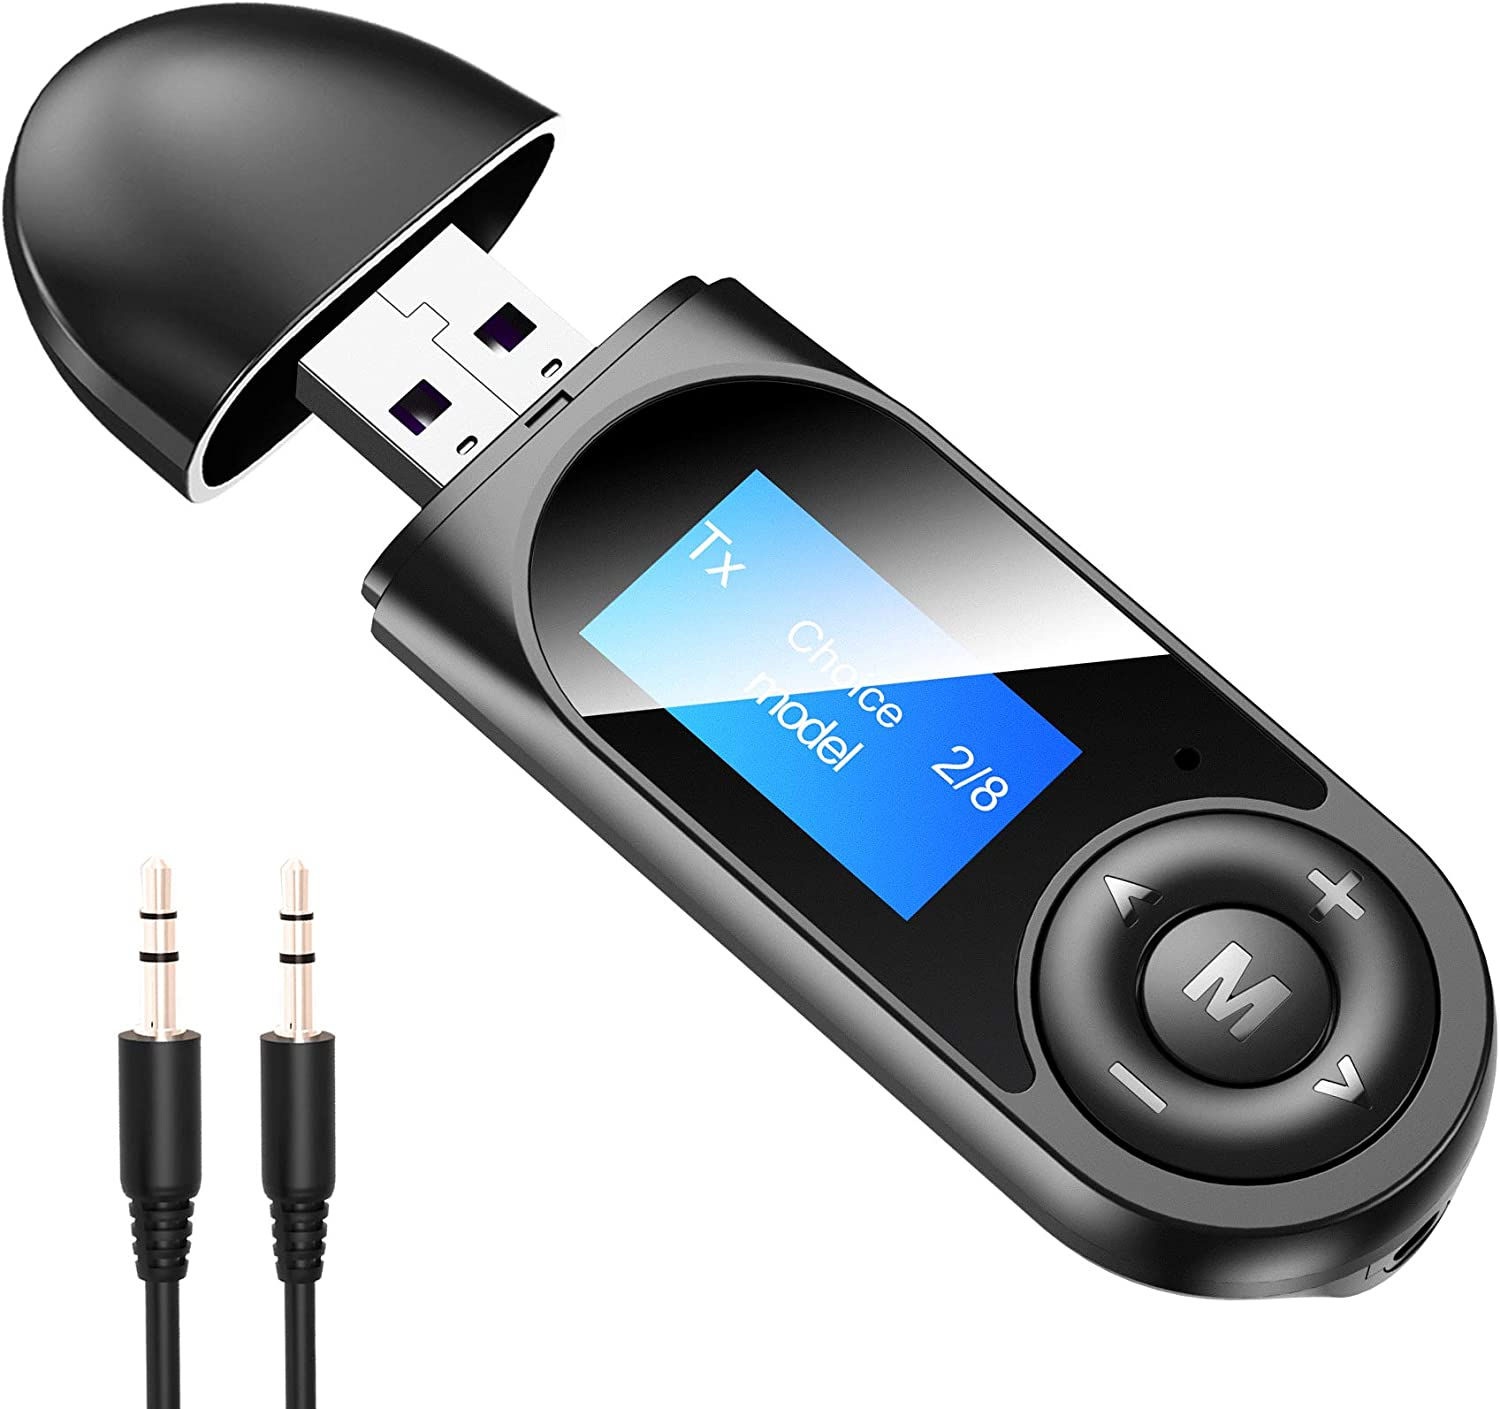 Bluetooth Adapter Audio Transmitter and in 1 Direct sale of manufacturer 2 Wirele Receiver Max 43% OFF